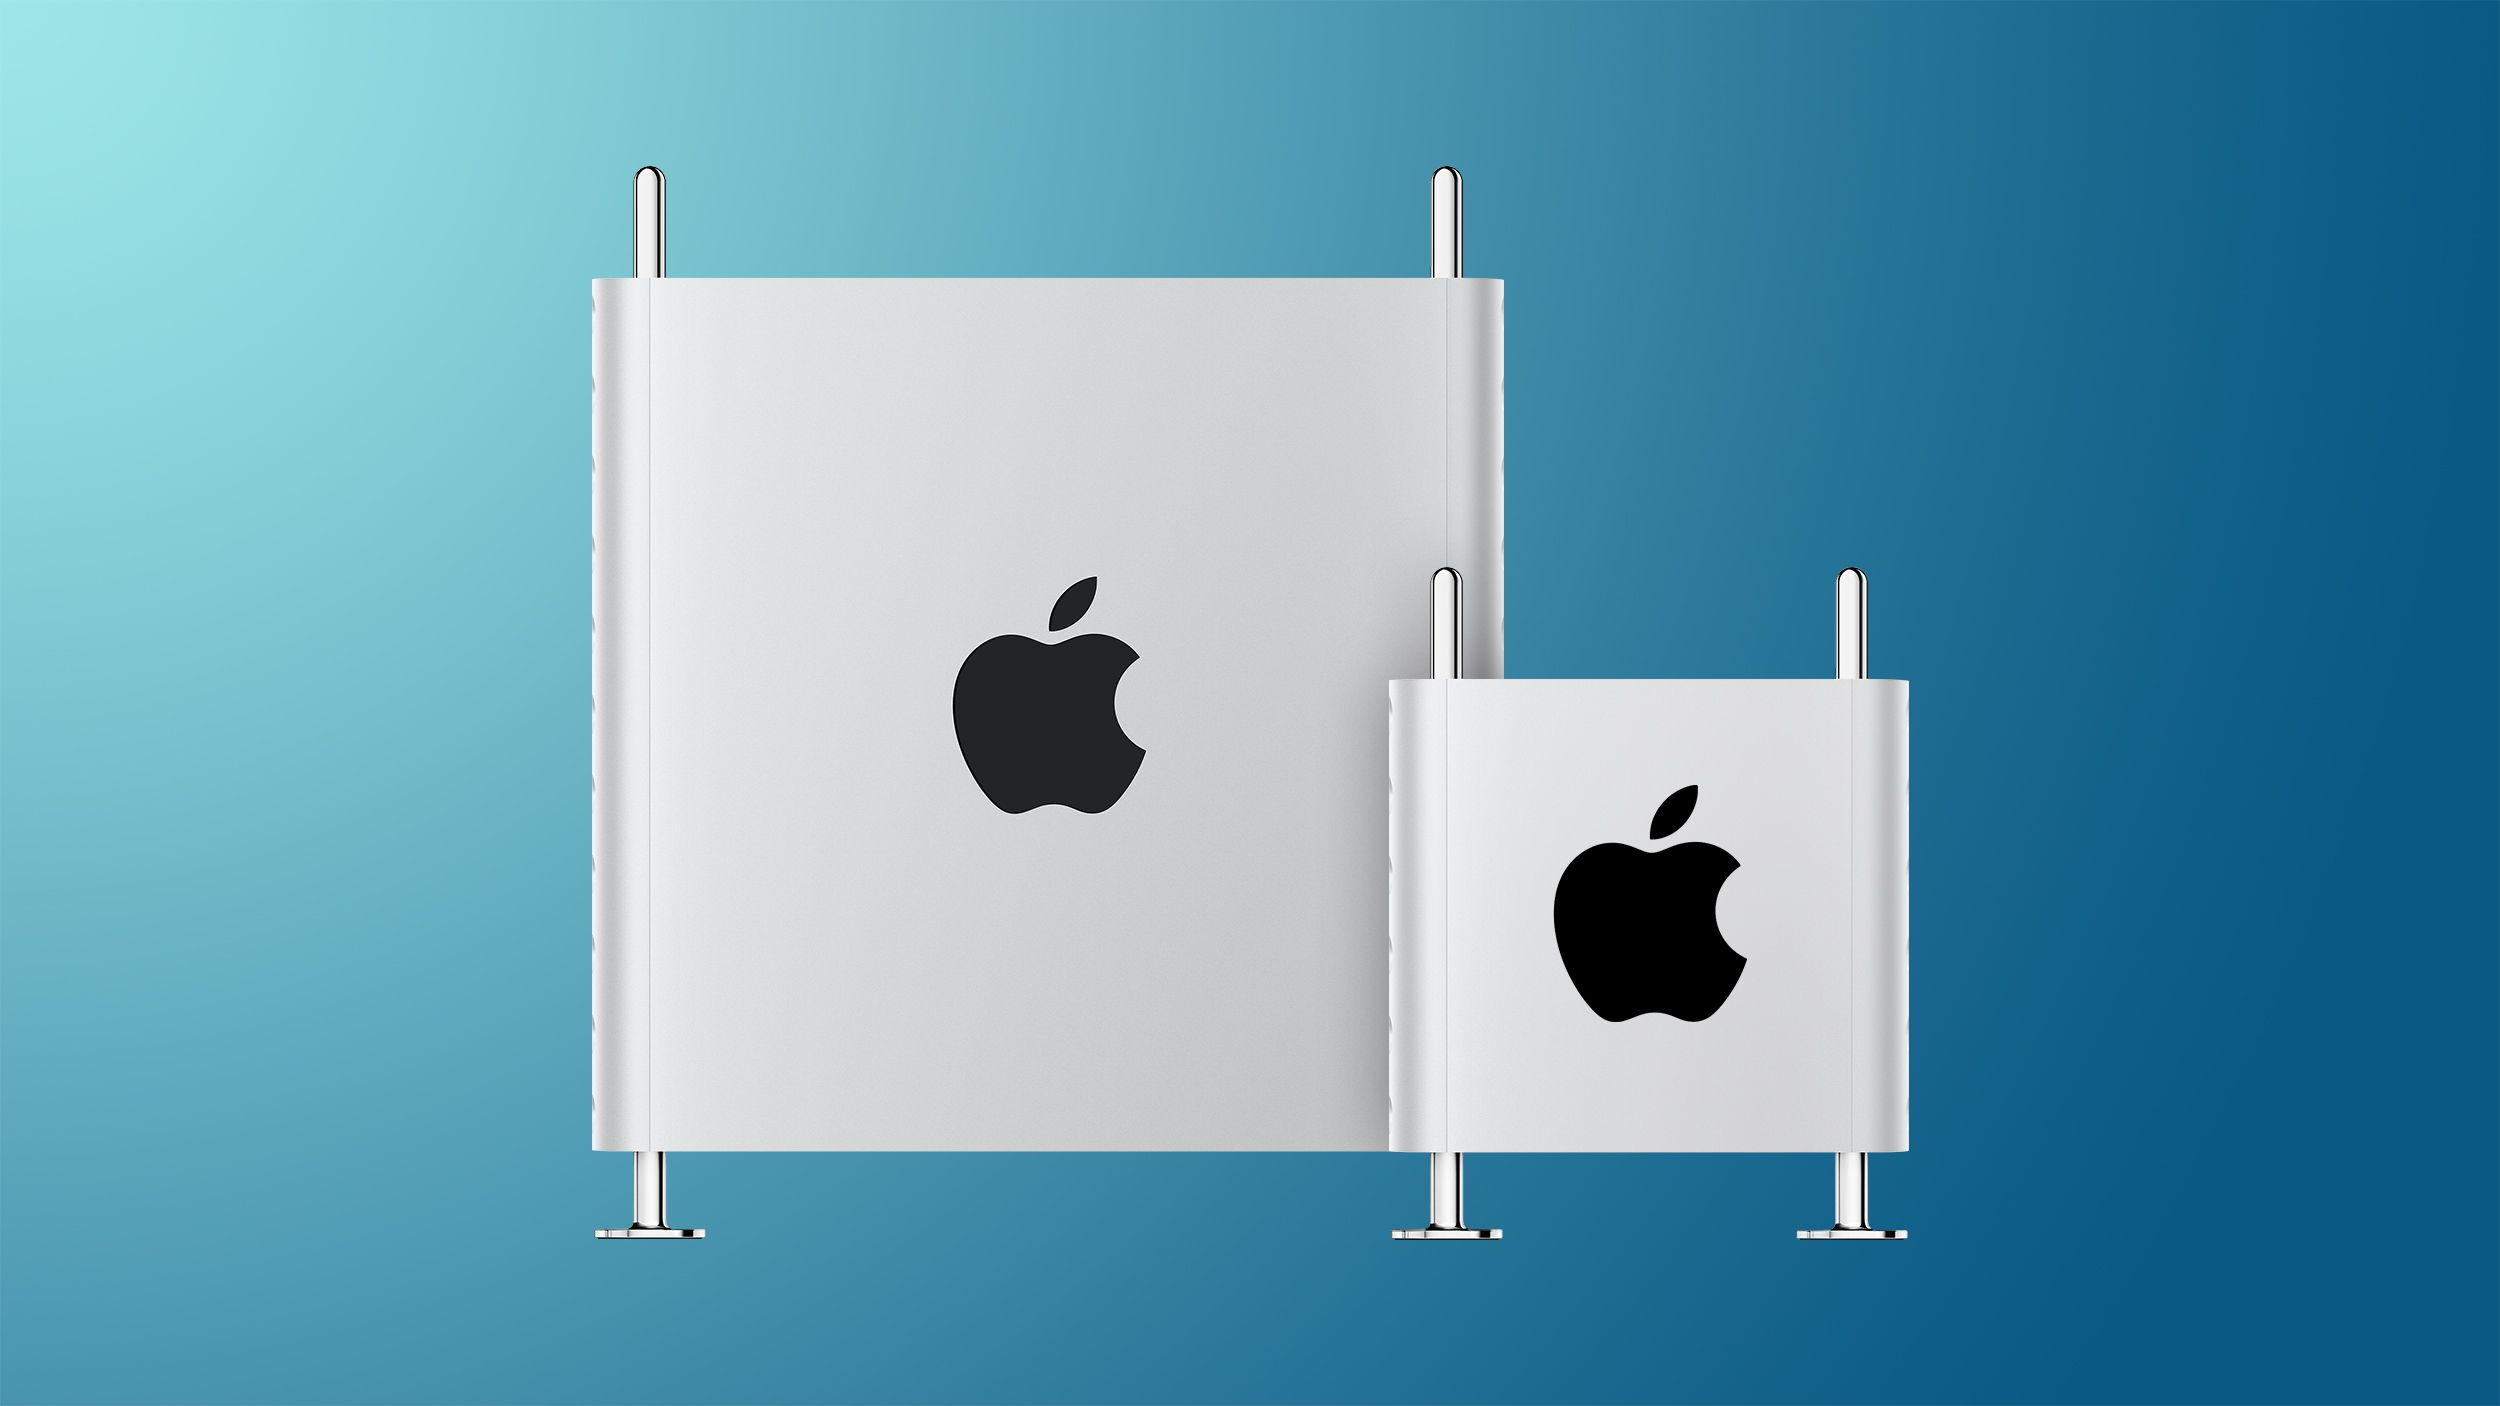 New Mac Pro to be smaller, powered by Apple silicon